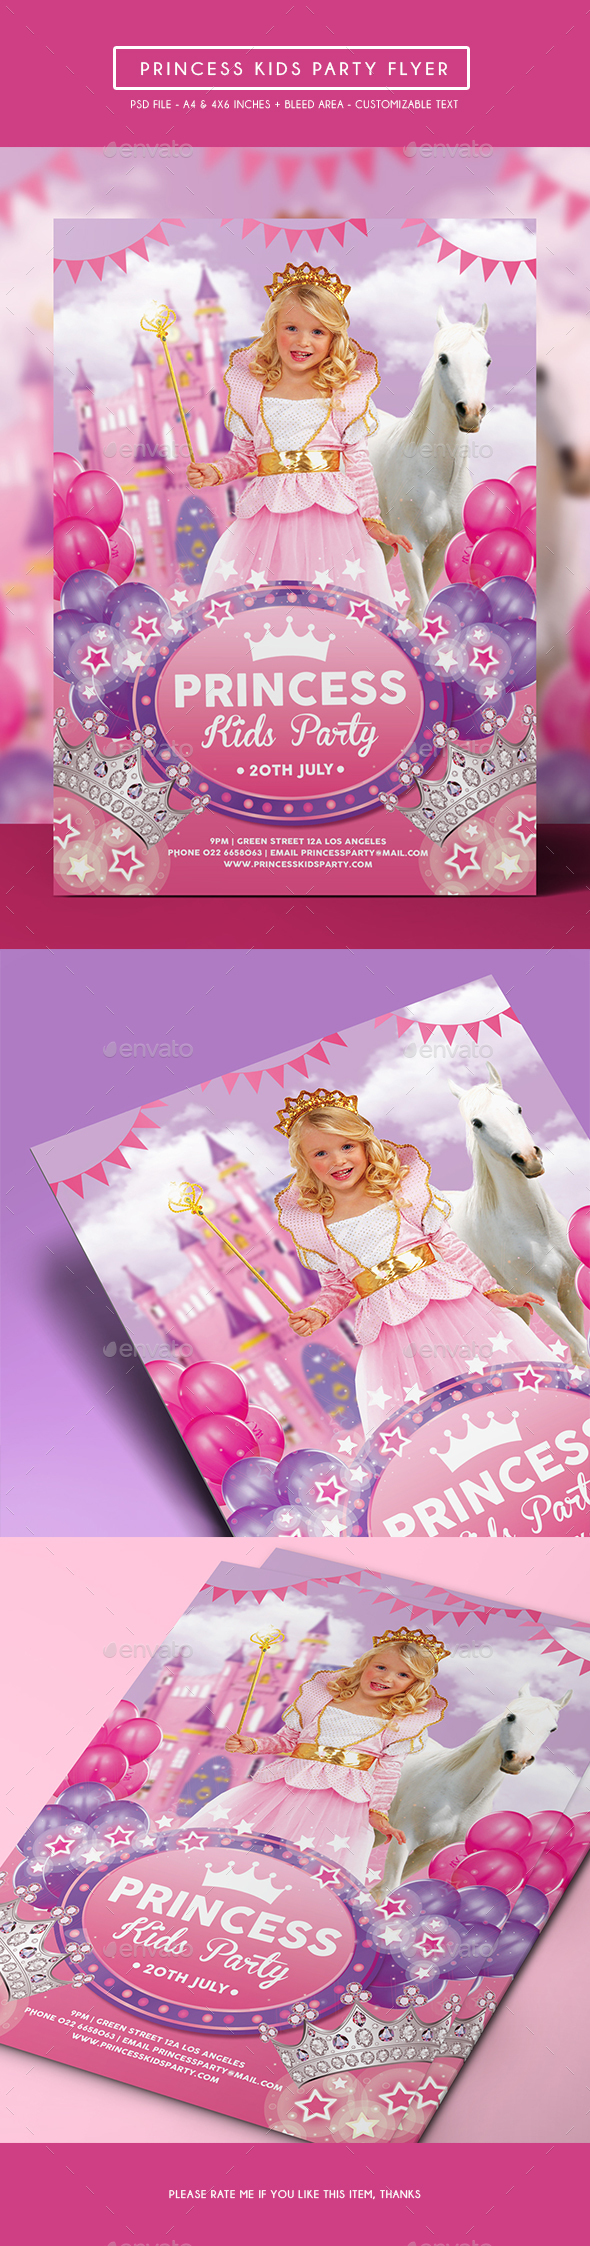 Princess Kids Party Flyer - Clubs & Parties Events